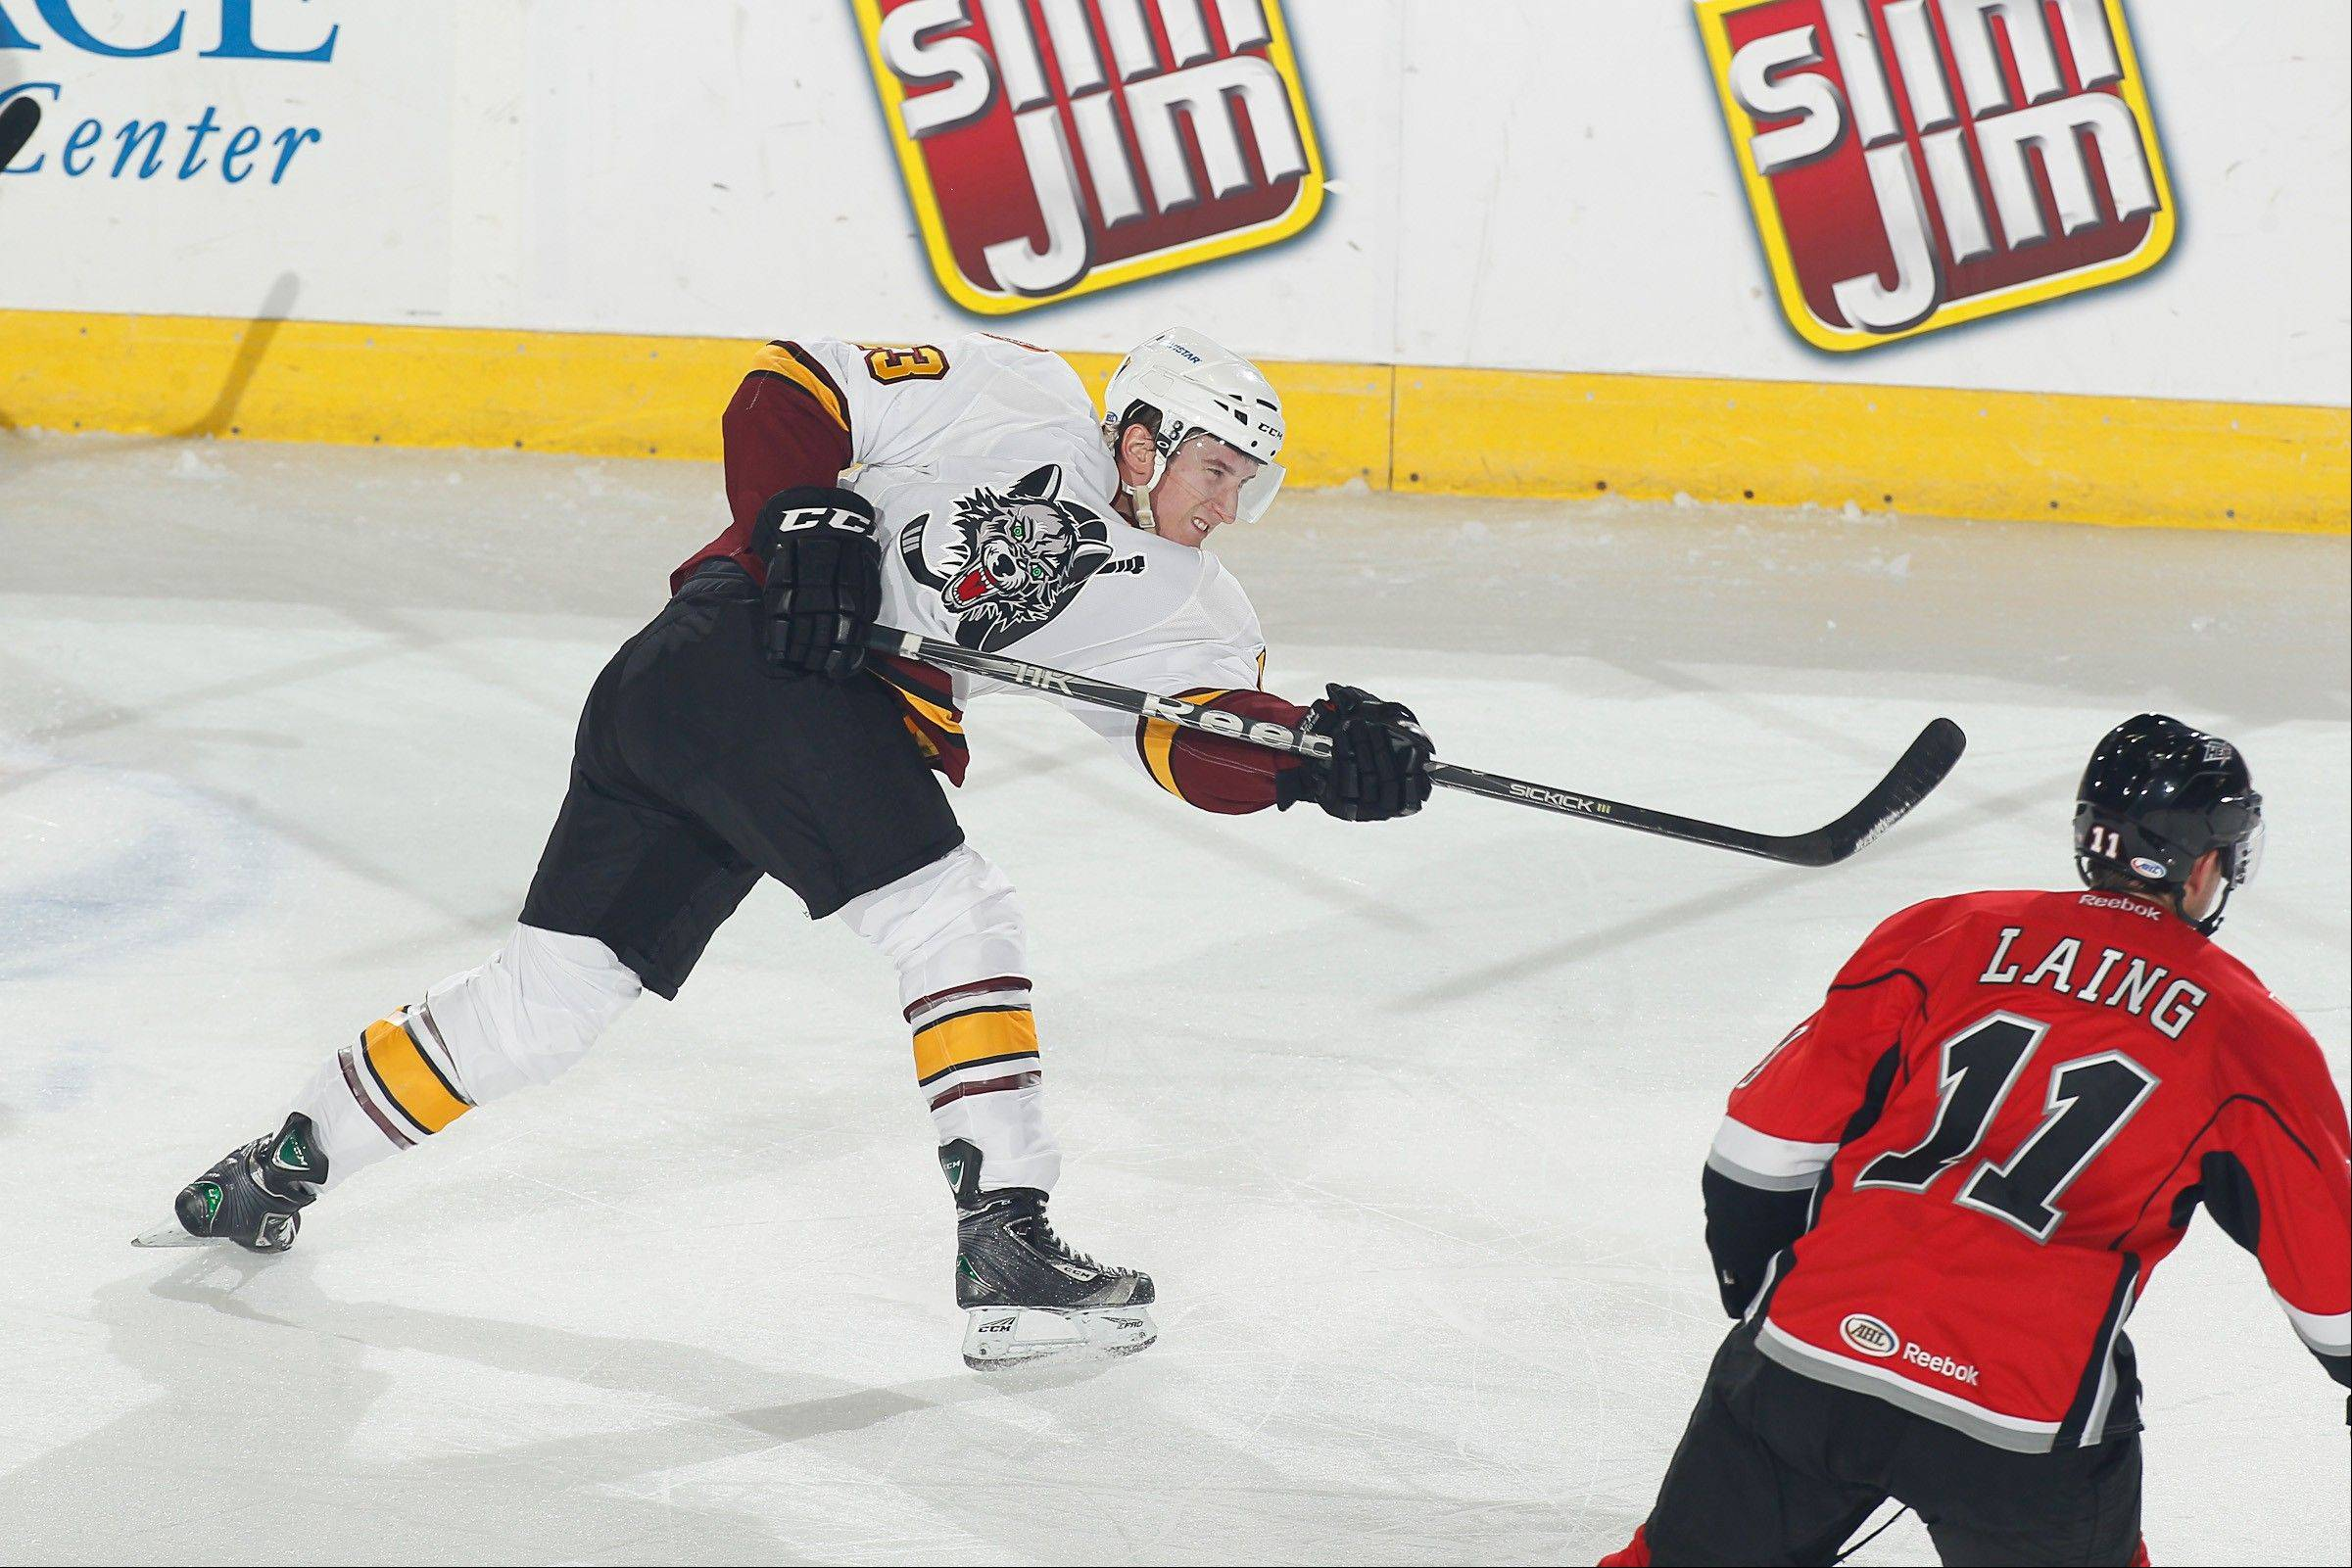 With 10 goals and 11 assists this season, Bill Sweatt is becoming an offensive threat for the Chicago Wolves, and his speed and quickness on the ice likely will get him a shot at the NHL level.